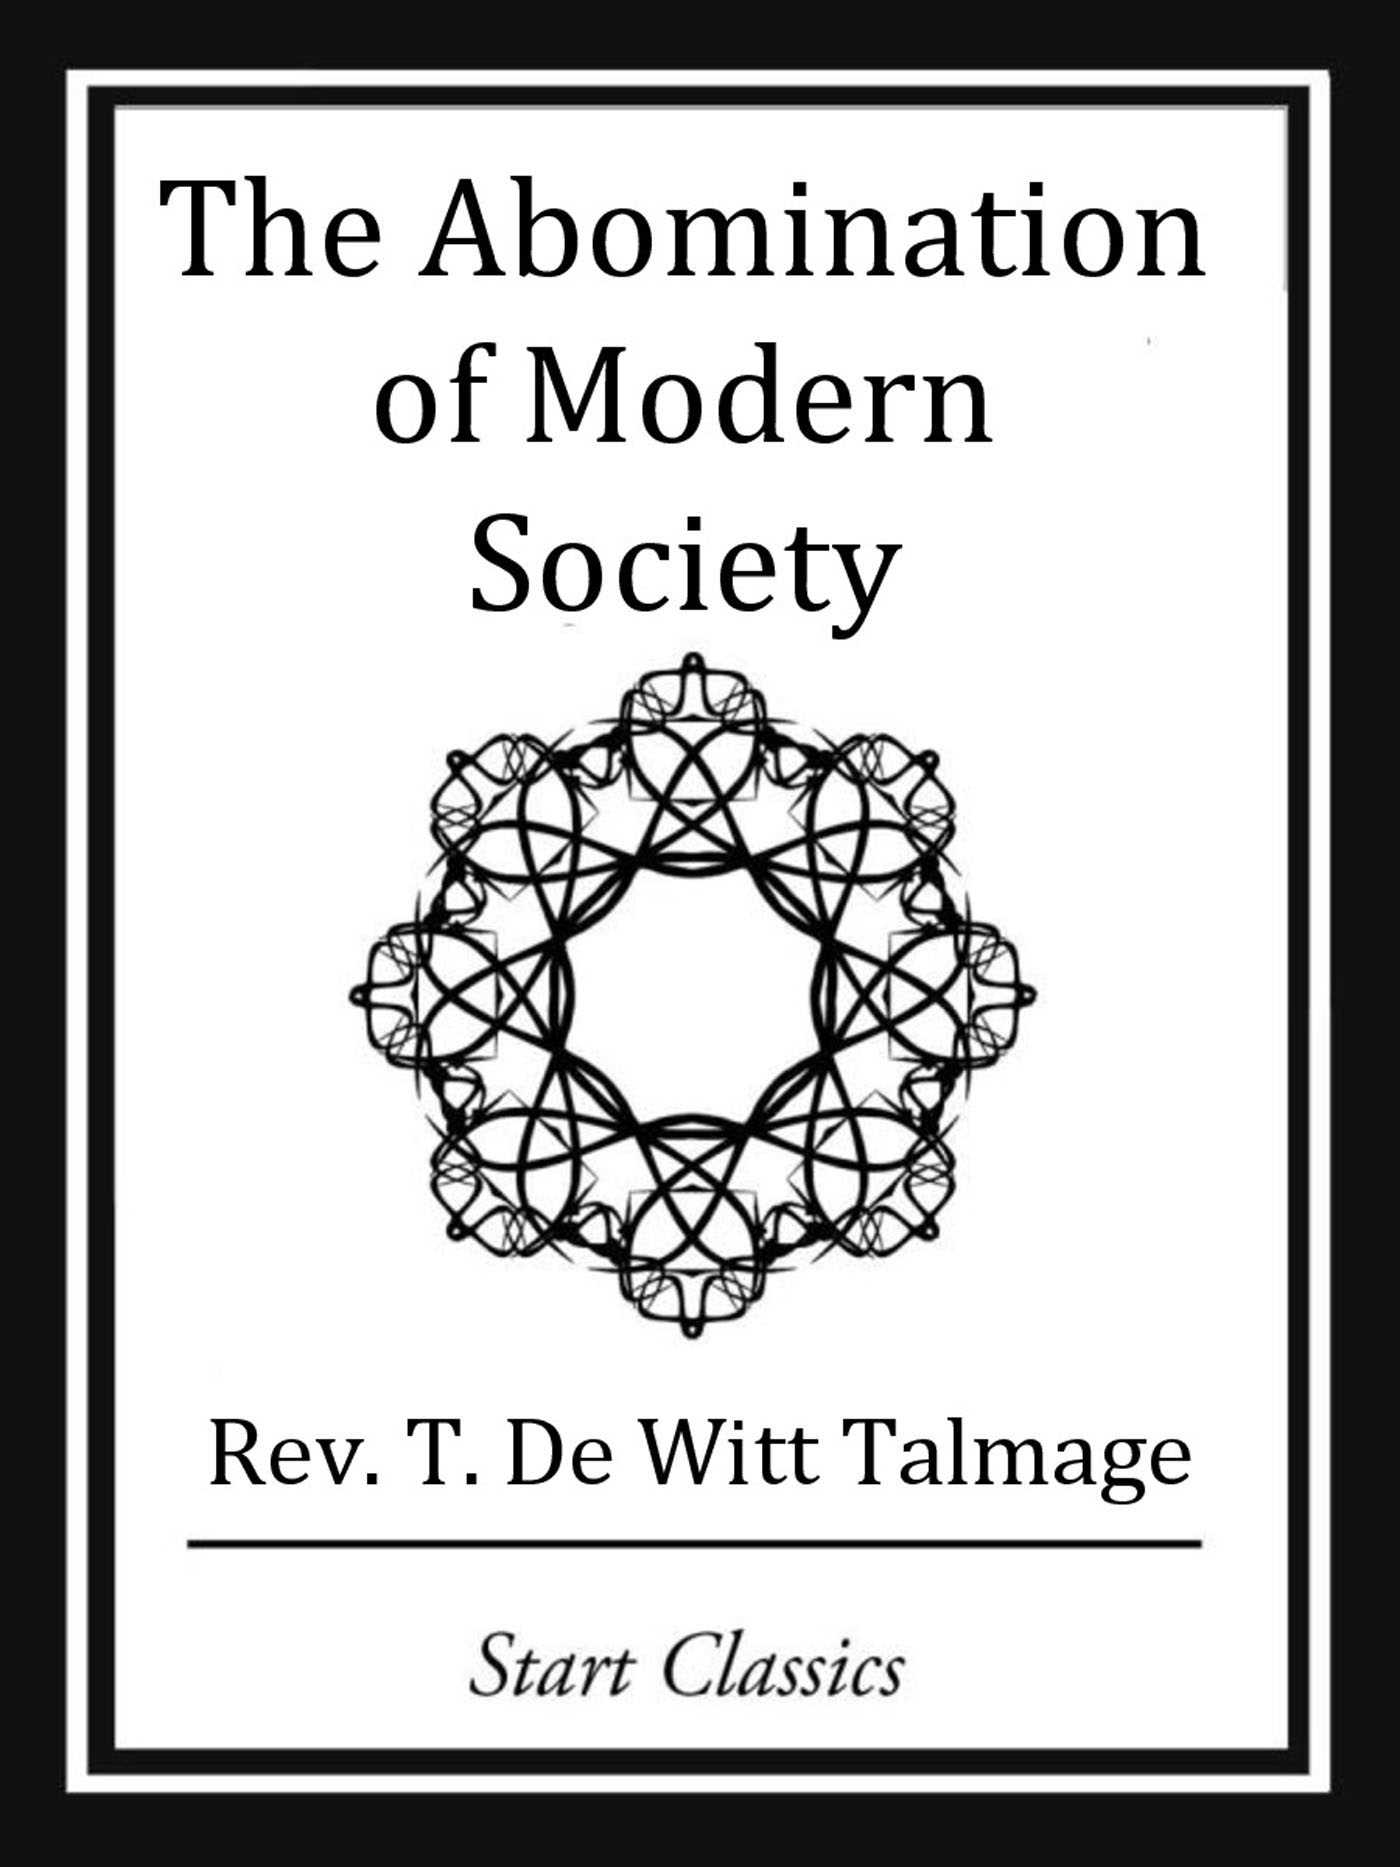 the effects of modernism to society Definitions and characteristics of modernity since the term modern is used to describe a wide range of periods, any definition of modernity must account for the context in question modern can mean all of post-medieval european history, in the context of dividing history into three large epochs: antiquity, medieval, and modern.